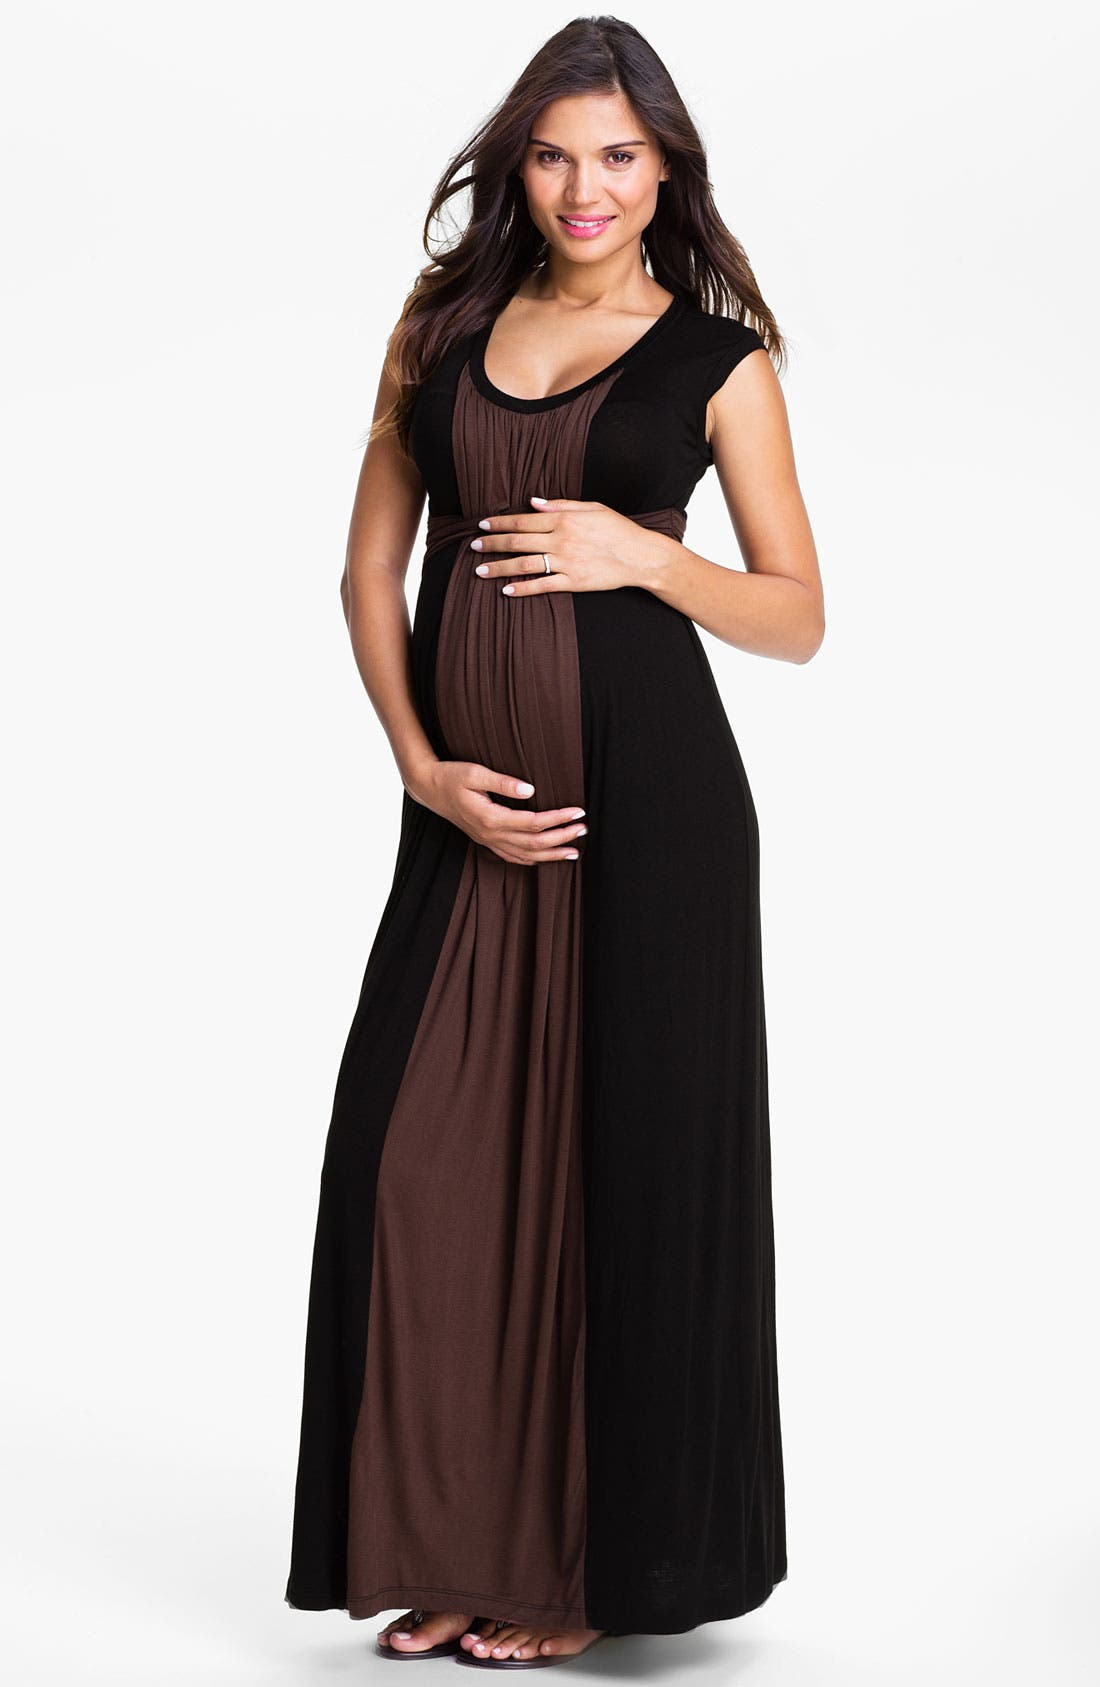 Main Image - Japanese Weekend Colorblock Maternity Dress with Nursing Access